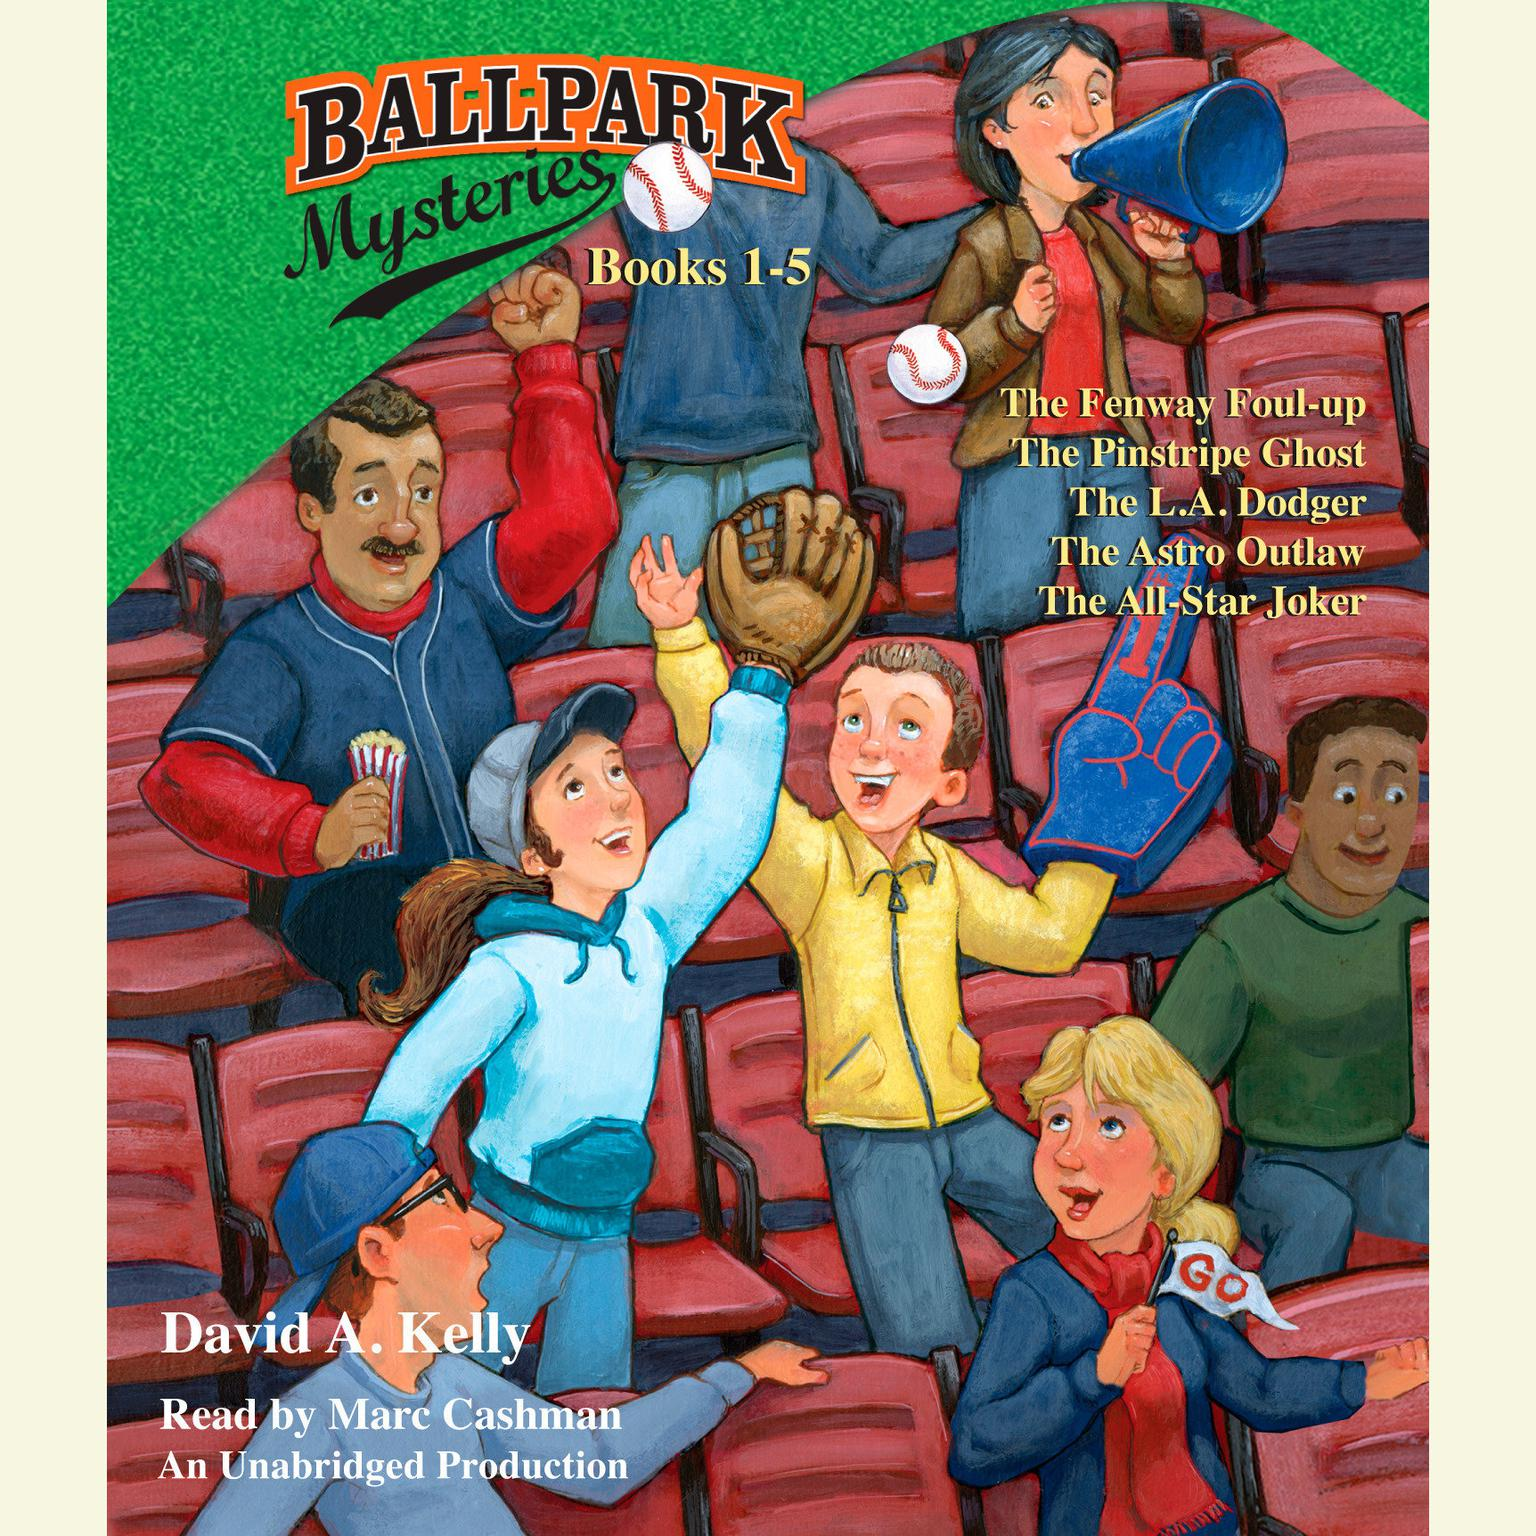 Printable Ballpark Mysteries Collection: #1 The Fenway Foul-up; #2 The Pinstripe Ghost; #3 The L.A. Dodger; #4 The Astro Outlaw; #5 The All-Star Joker Audiobook Cover Art